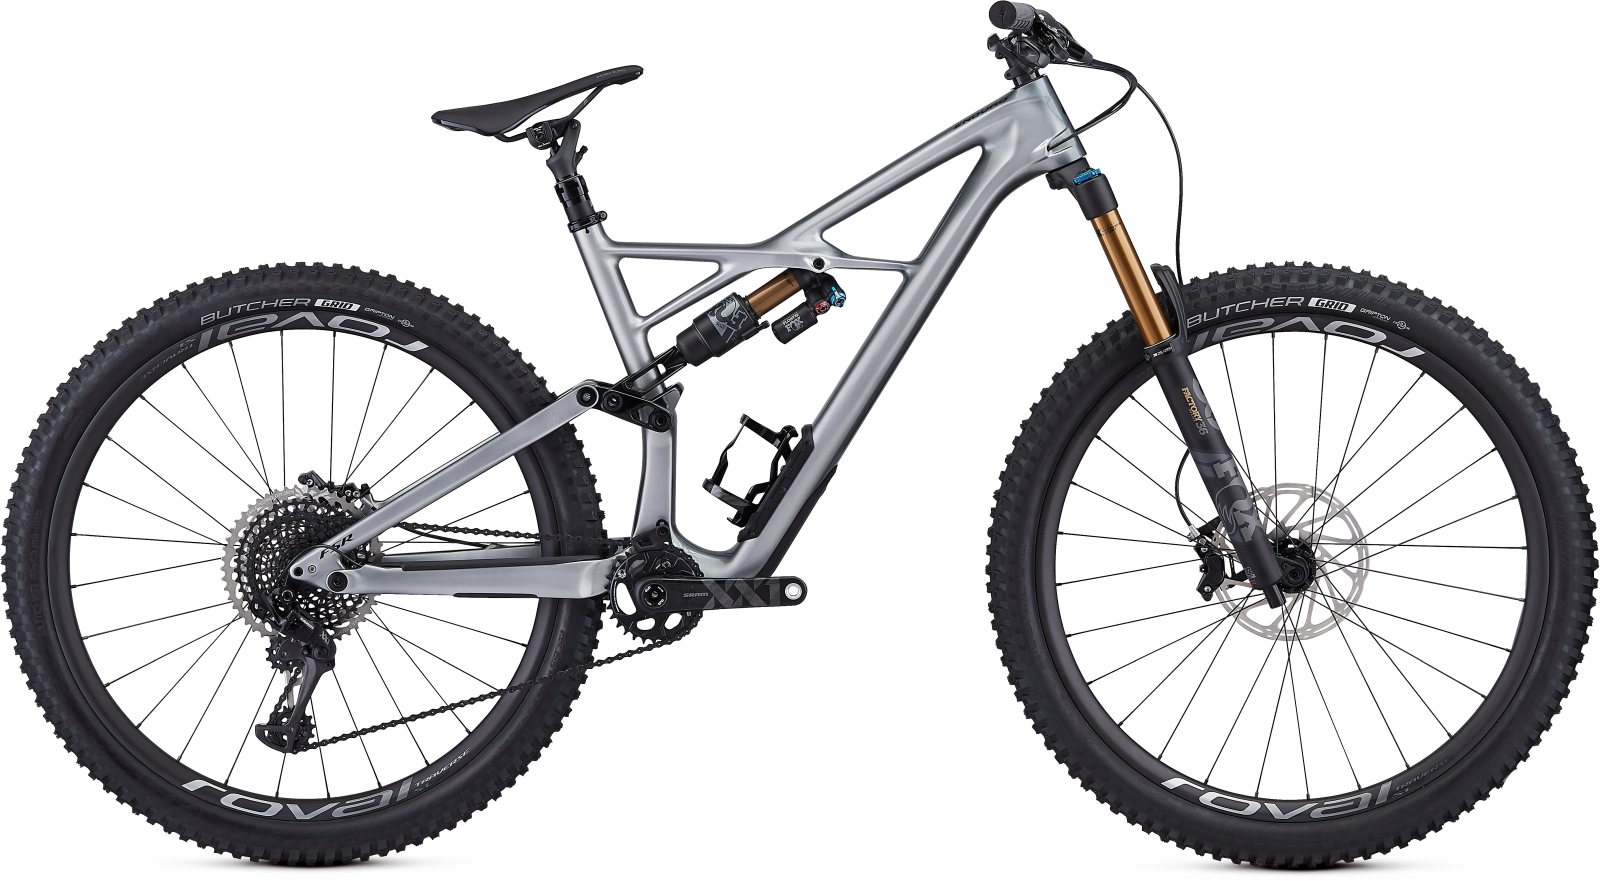 Specialized S-Works Enduro FSR Carbon 29/6Fattie - flake silver/tarmac black M